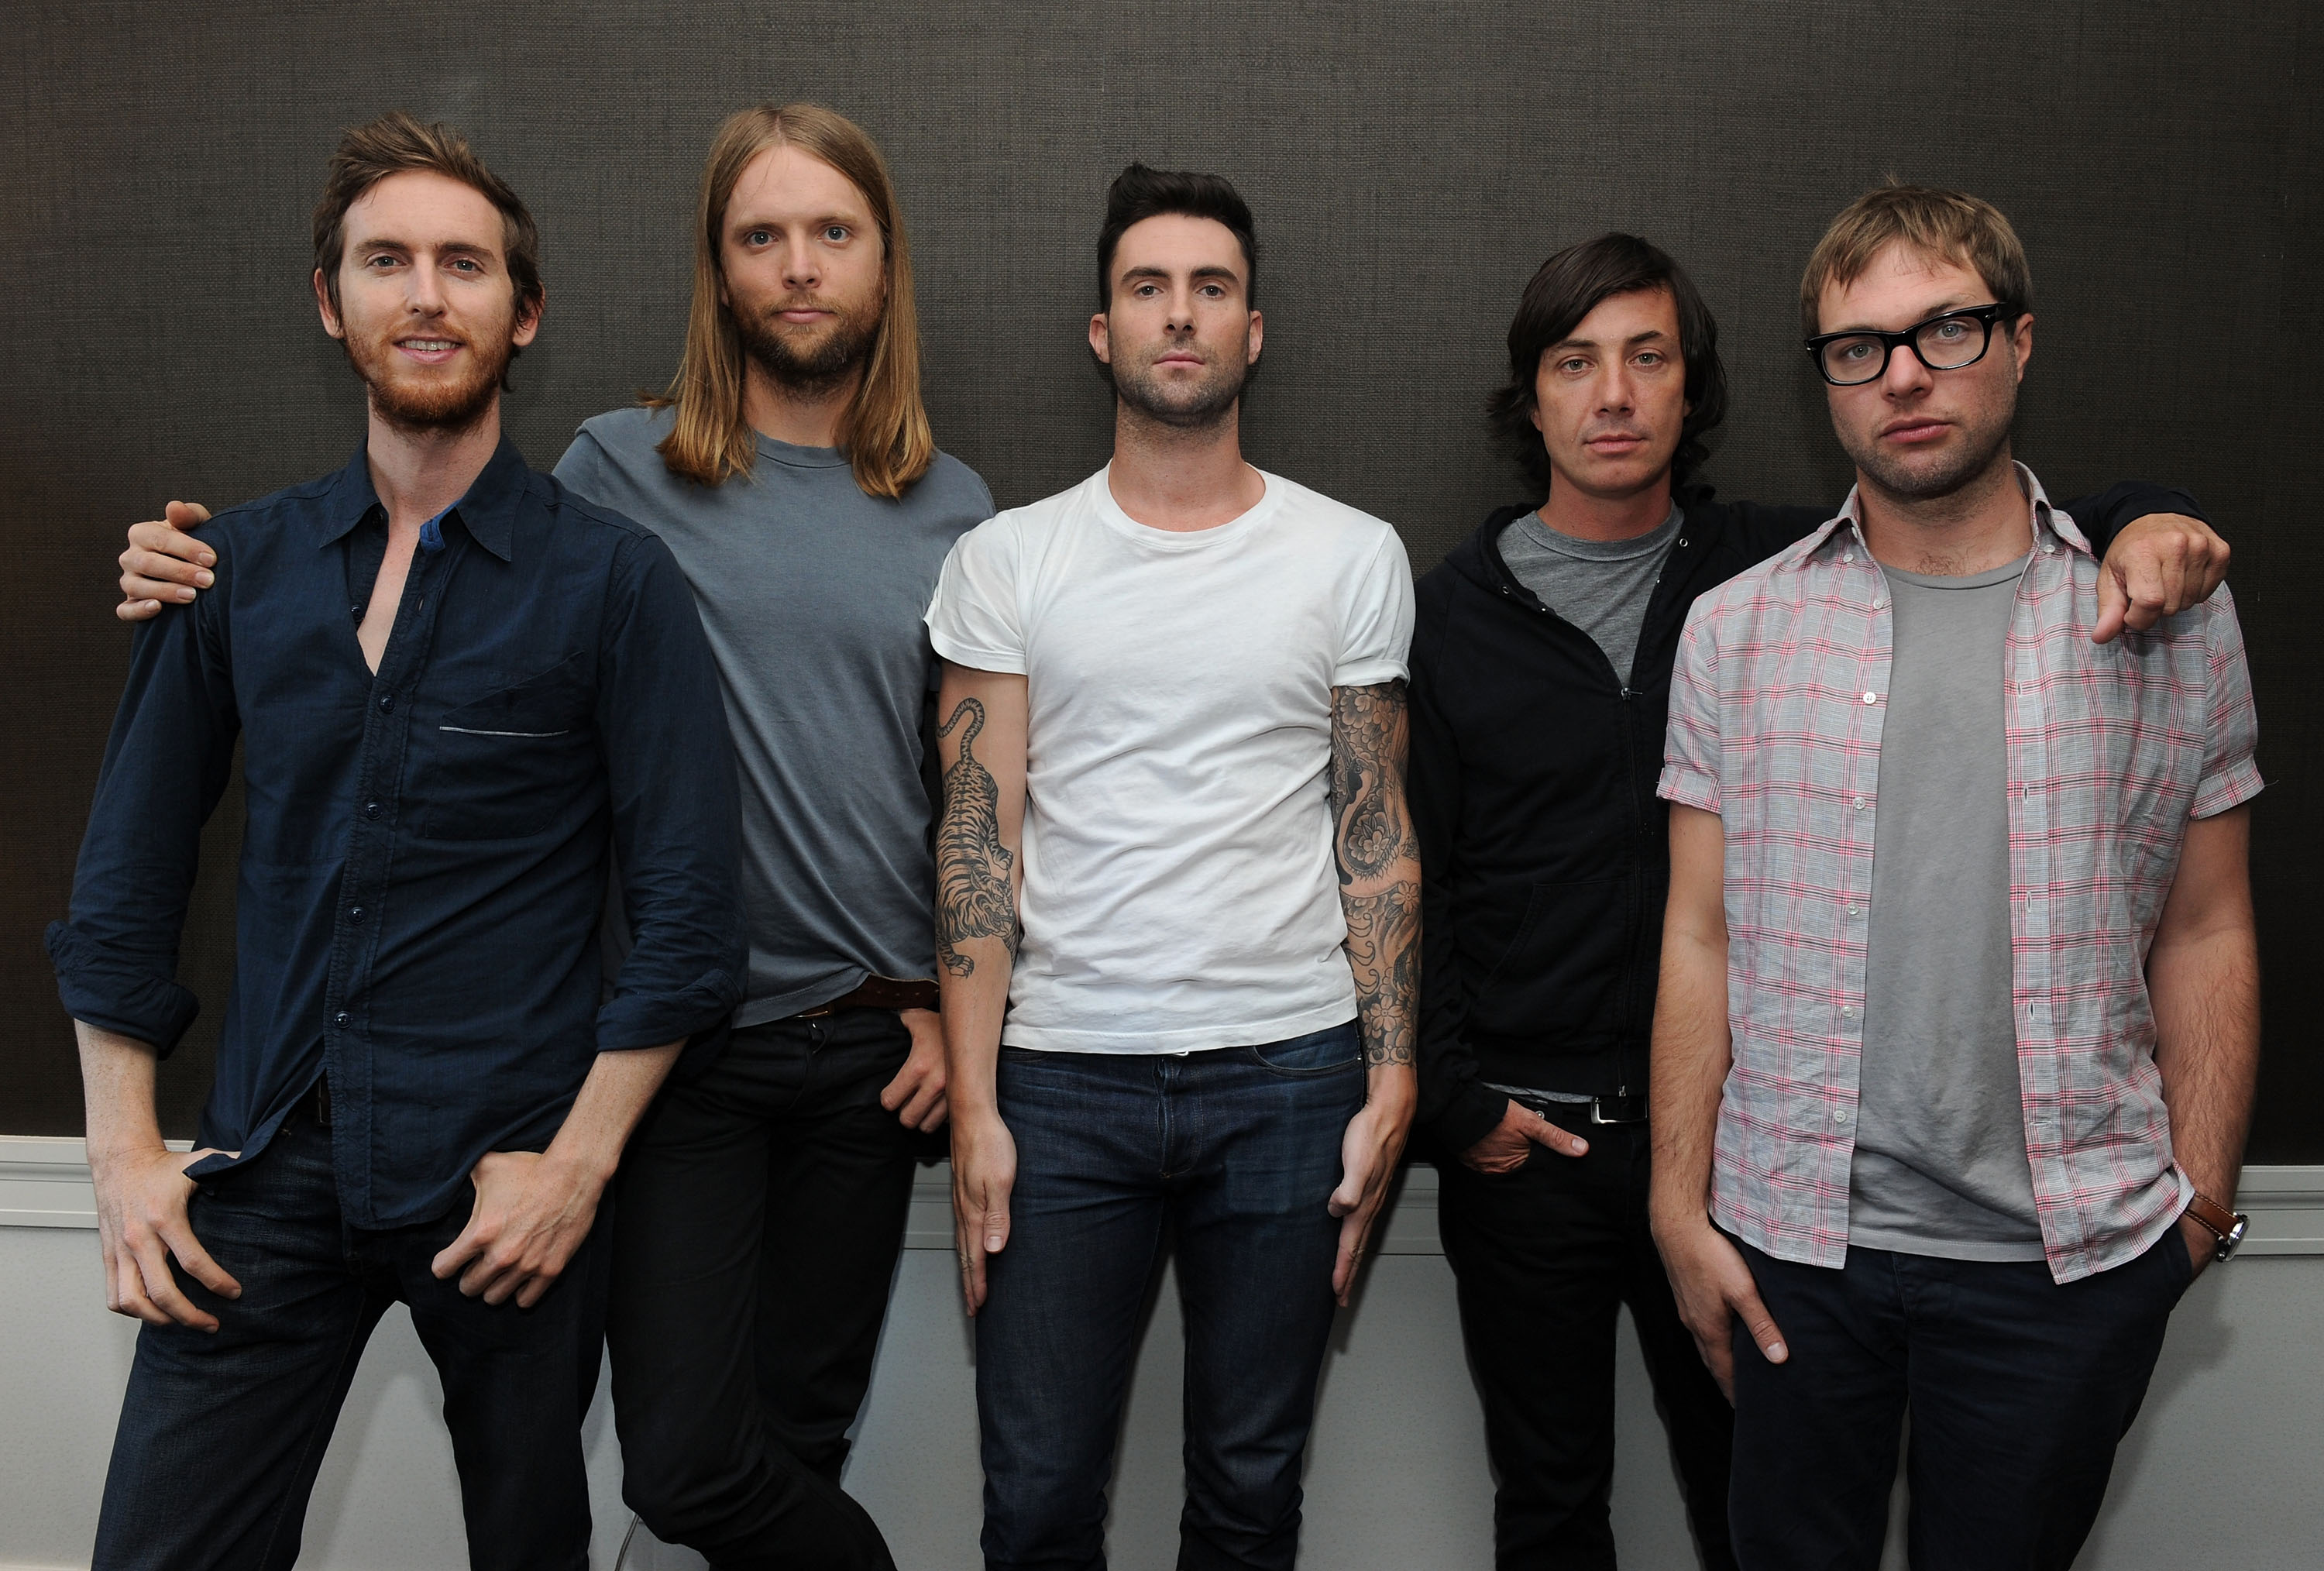 Musicians Jesse Carmichael, James Valentine, Adam Levine, Matt Flynn and Michael Madden of the band Maroon 5 attend the VEVO Summer Sets Concert Series at the Empire Hotel on July 1, 2010, in New York City. (Getty Images)